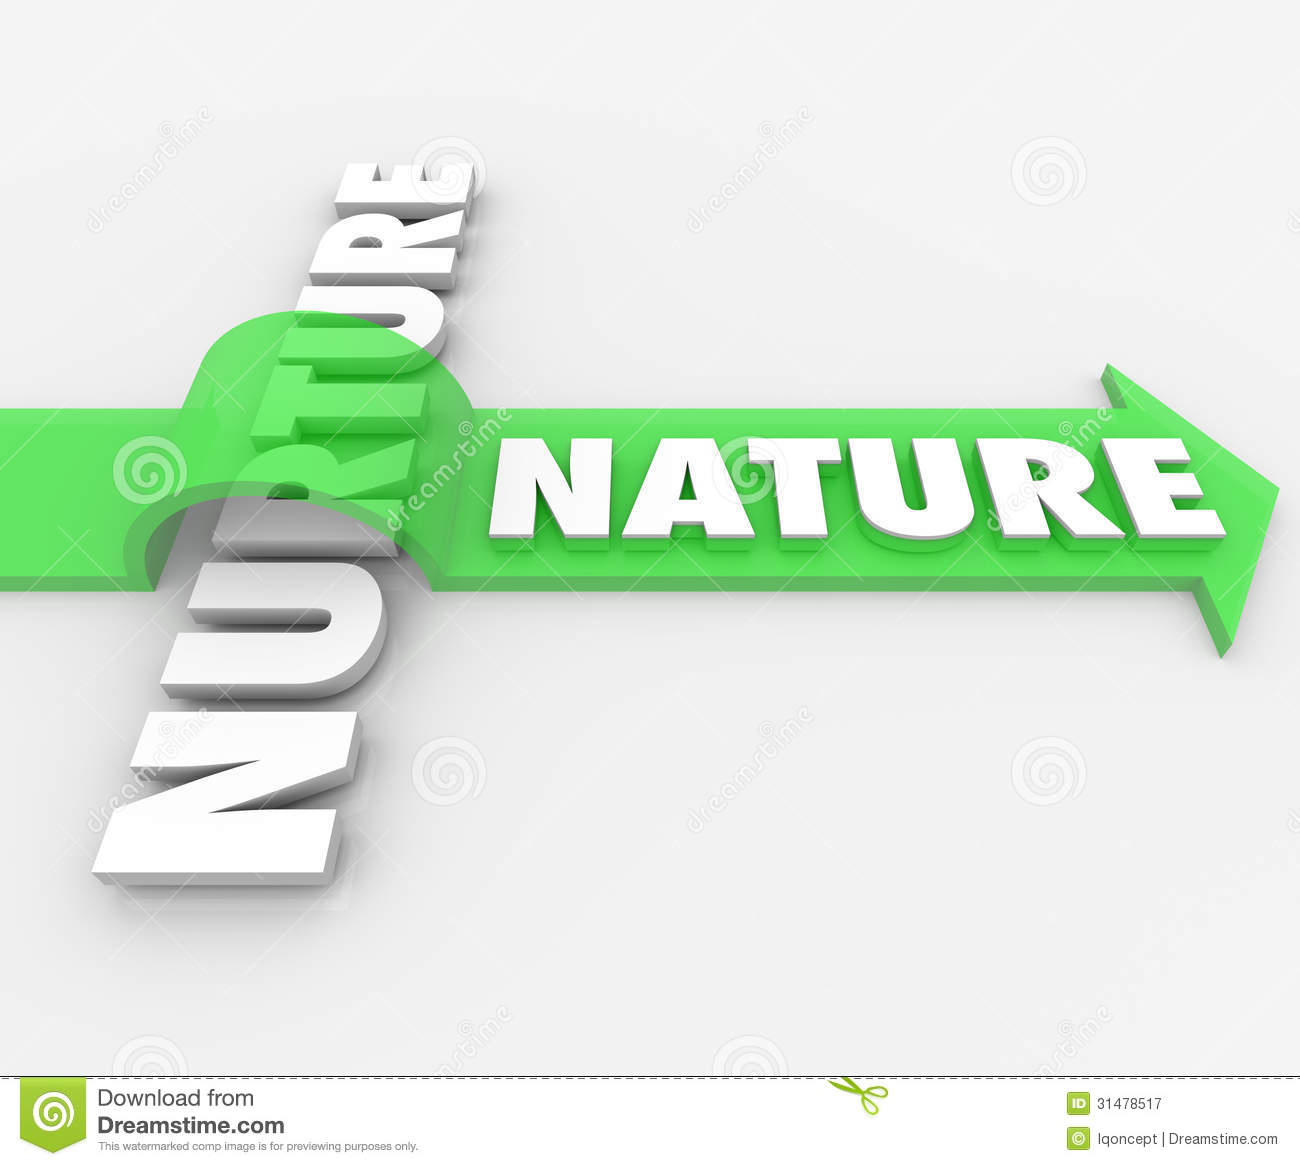 Nature word jumping arrow over nurture genetics hereditary stock illustration illustration of - Nurture images download ...